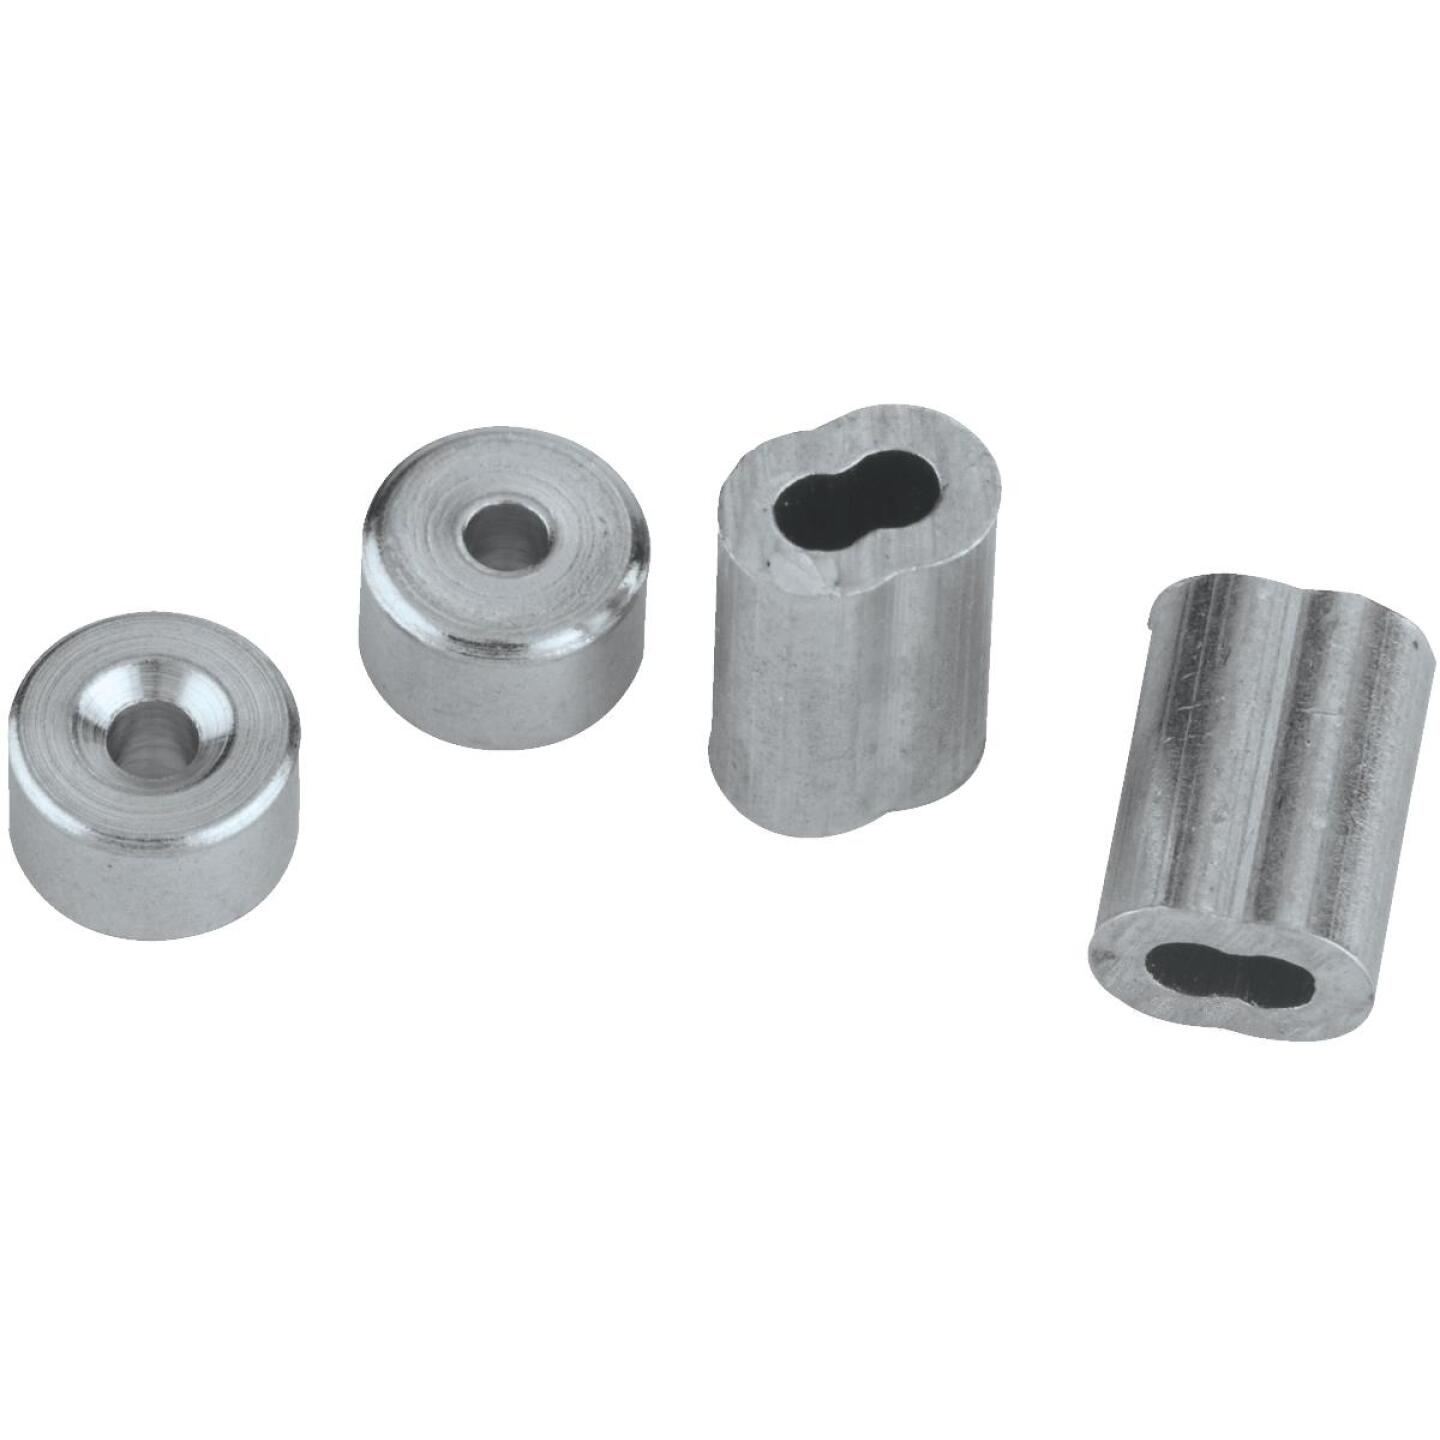 National 3/32 In. Aluminum Garage Door Ferrule & Stop Kit Image 3